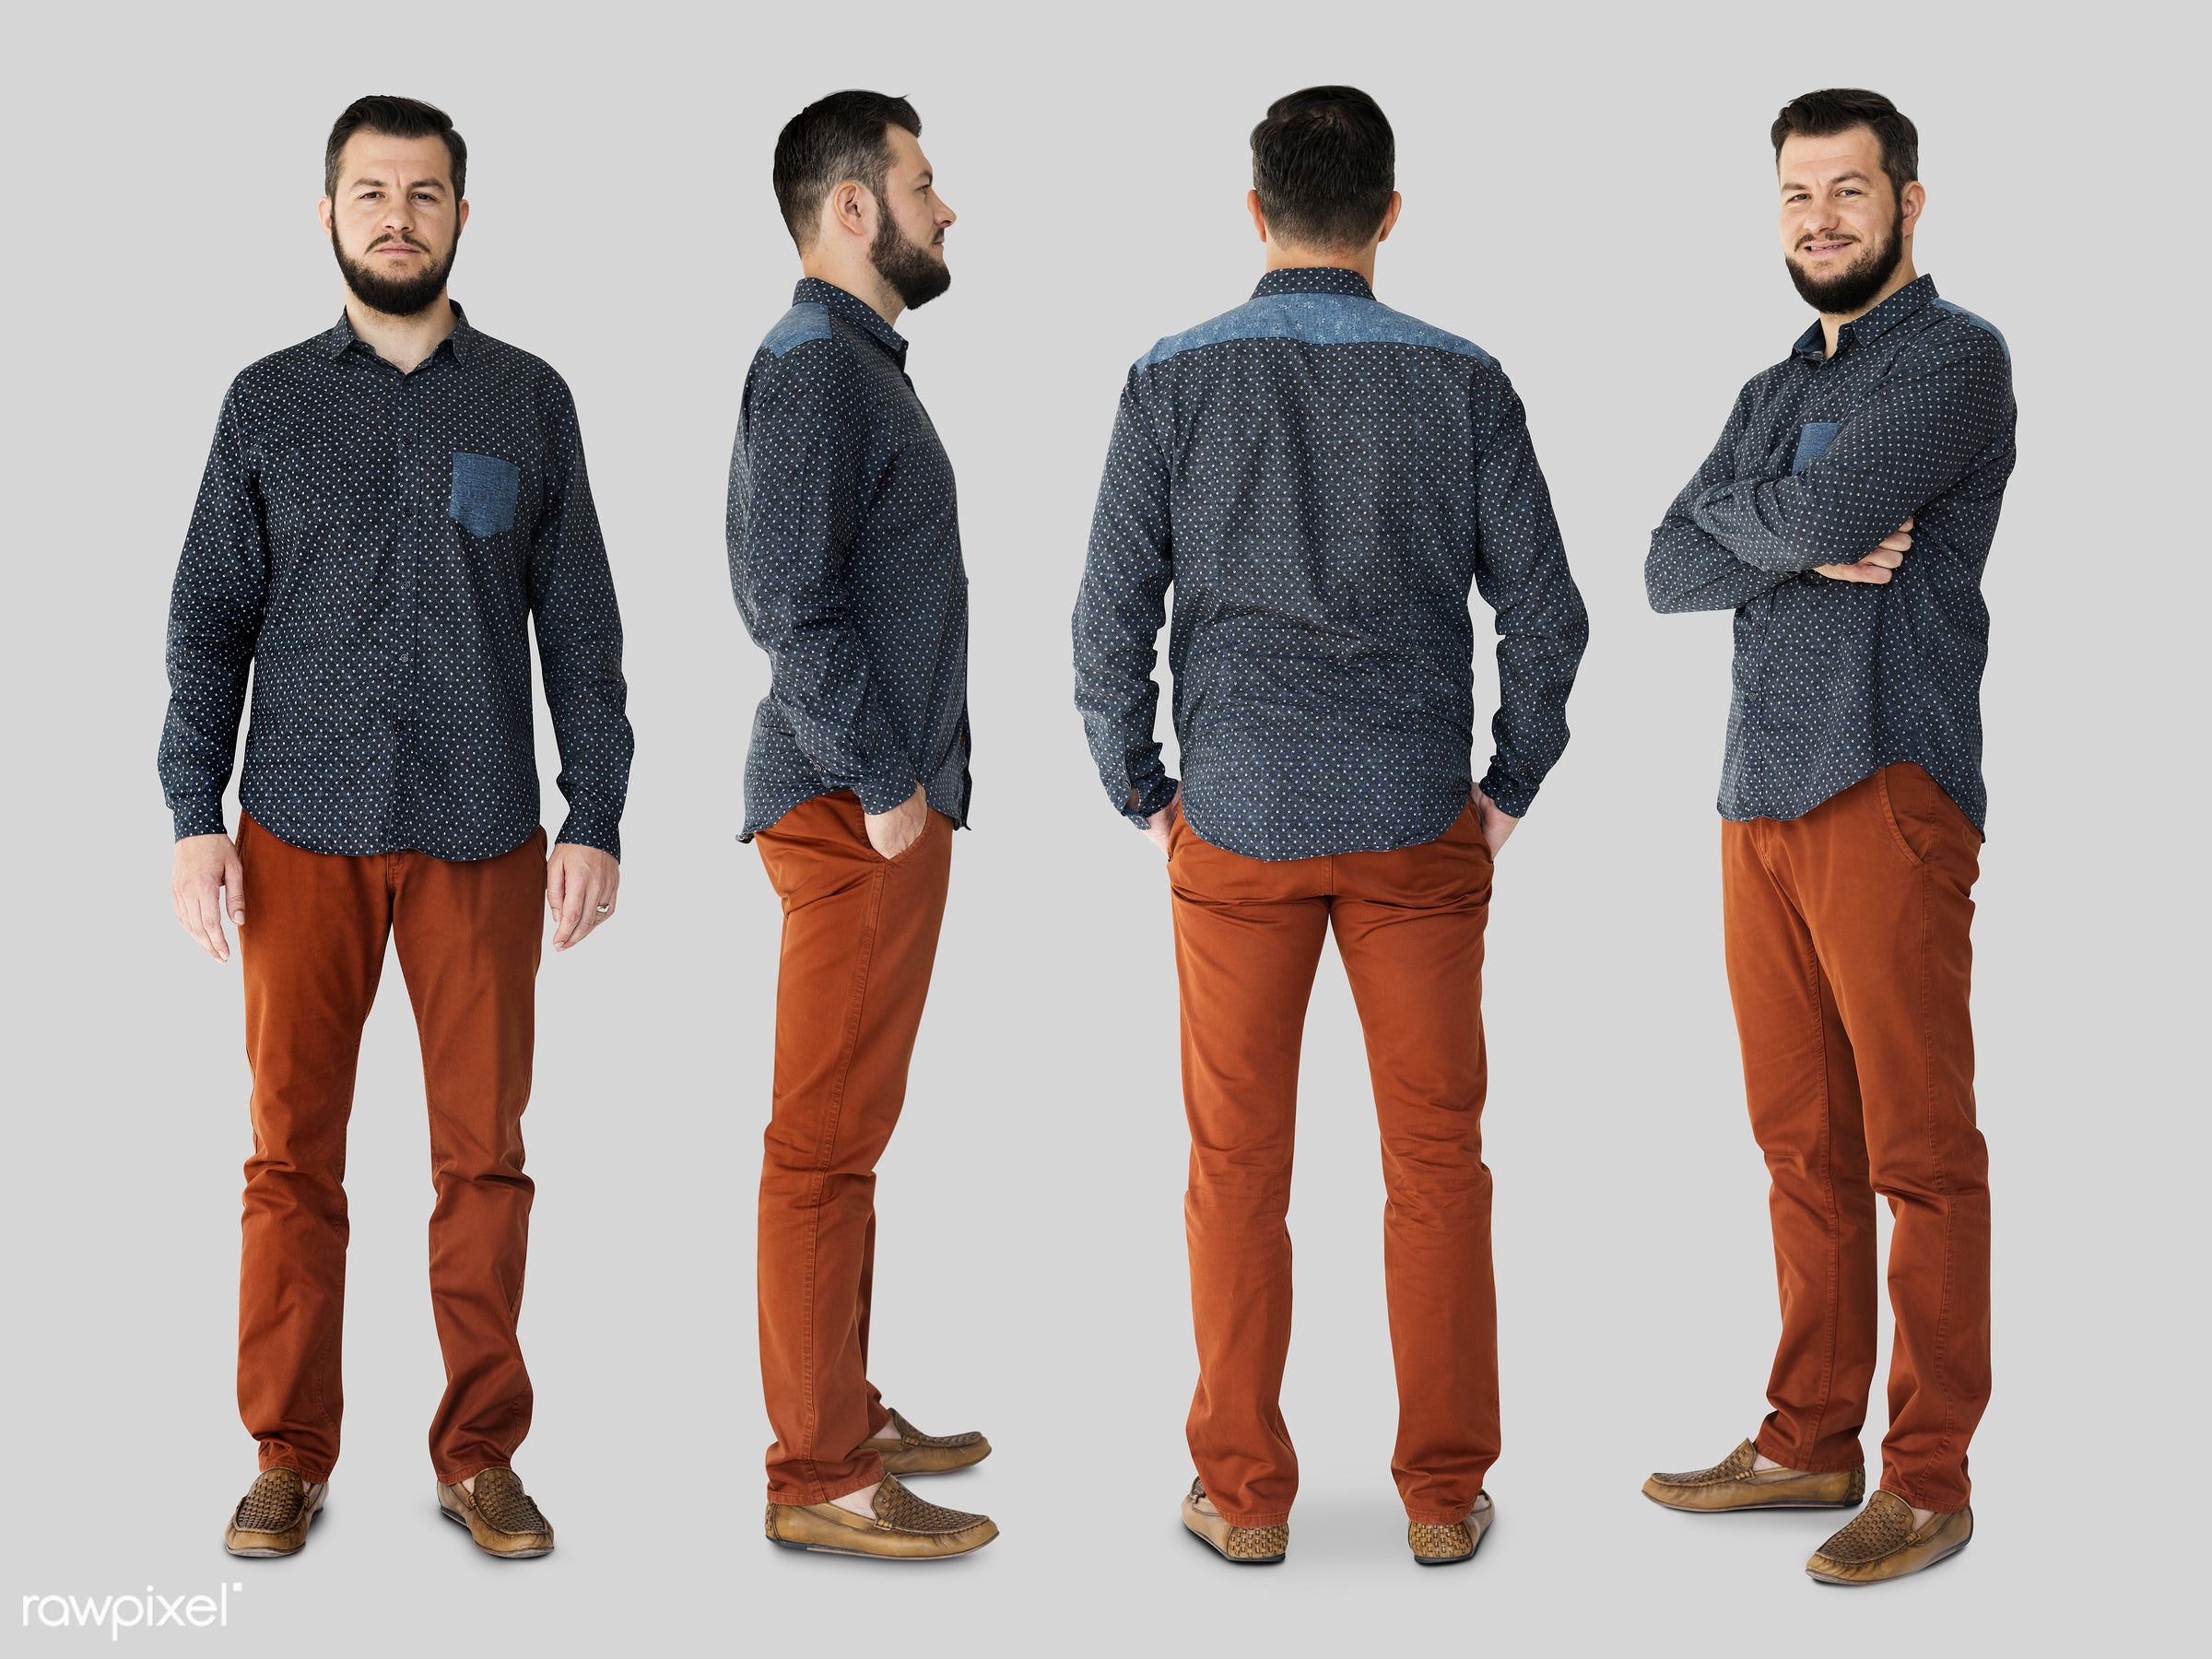 studio, person, relax, set, collection, people, attraction, caucasian, life, solo, side, attractive, casual, lifestyle,...